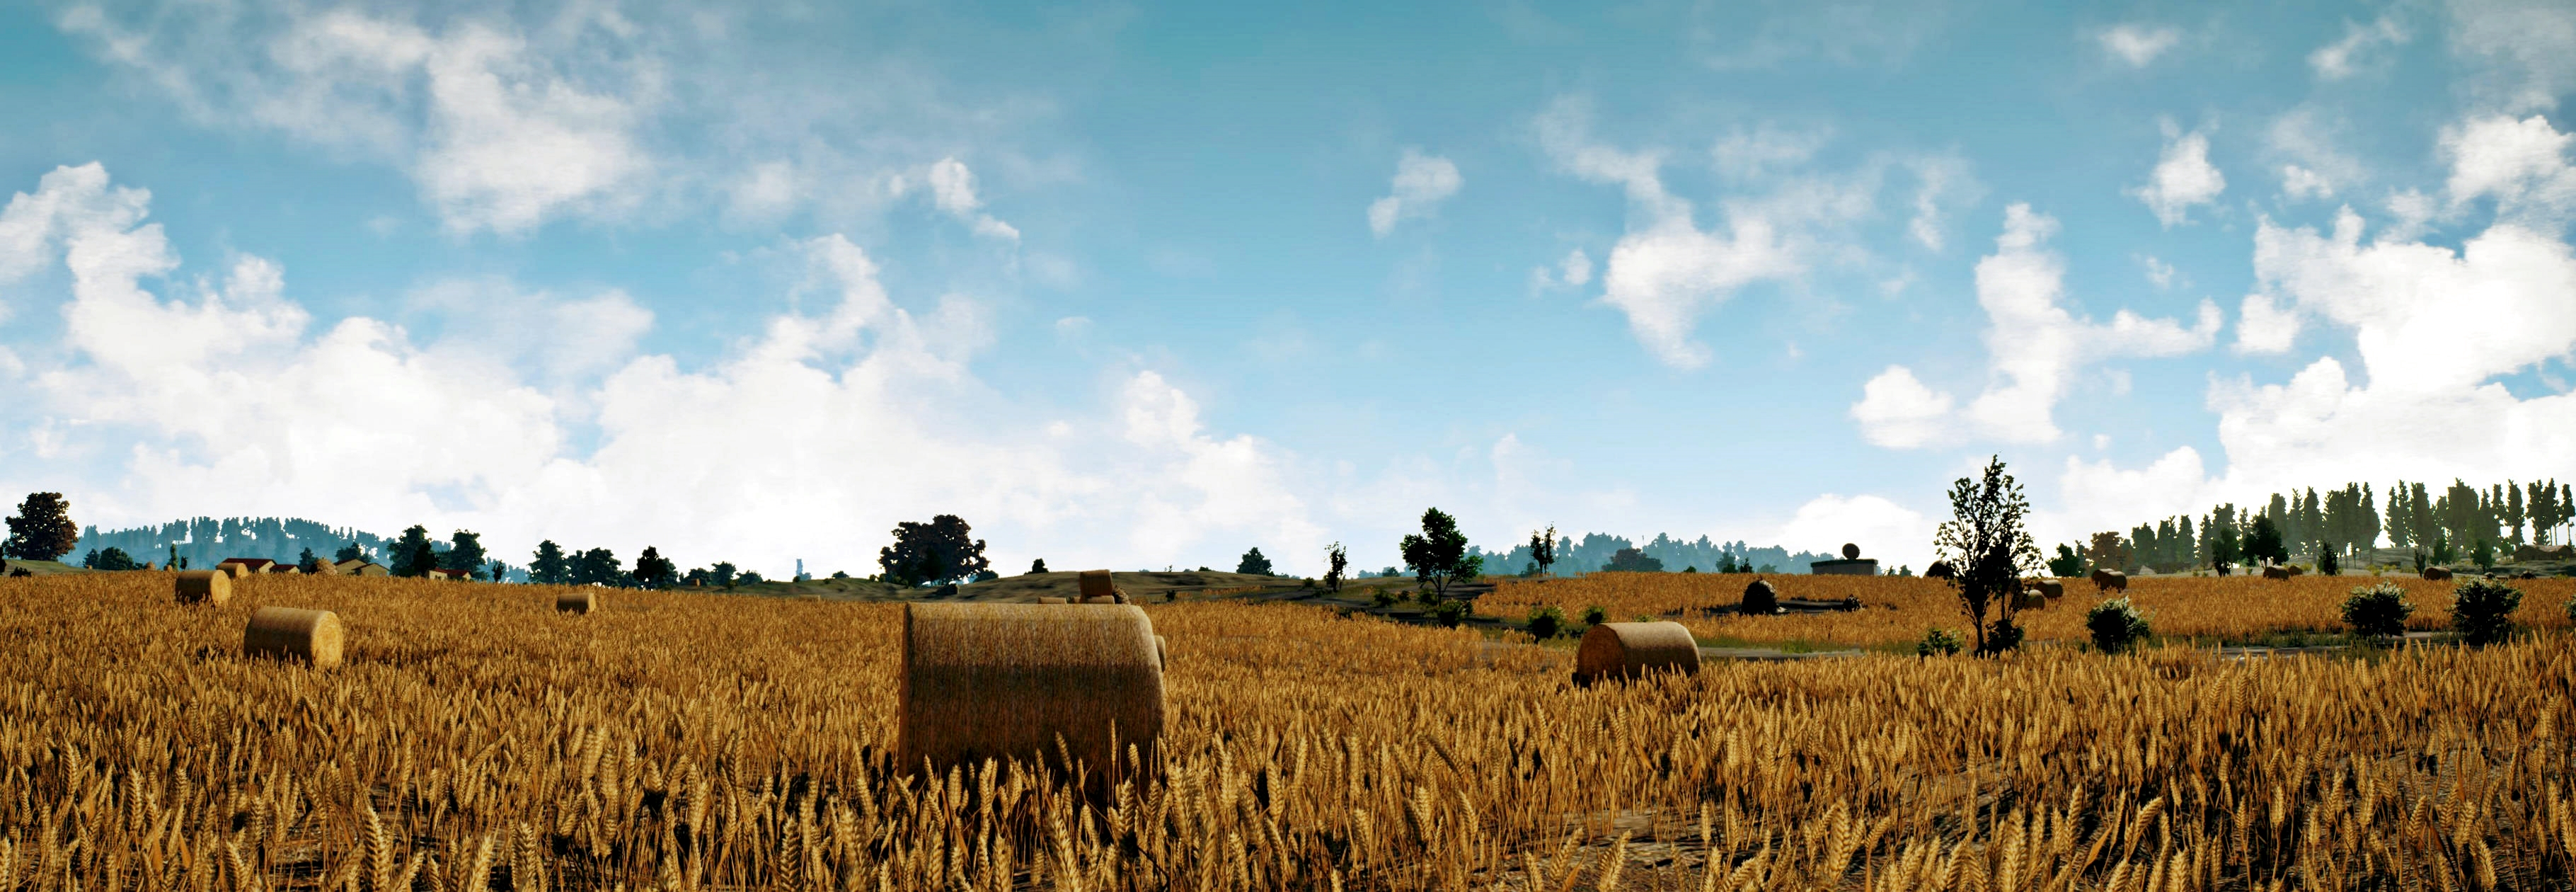 Pubg Wallpaper Dual Monitor: PlayerUnknown's Battlegrounds HD Wallpaper